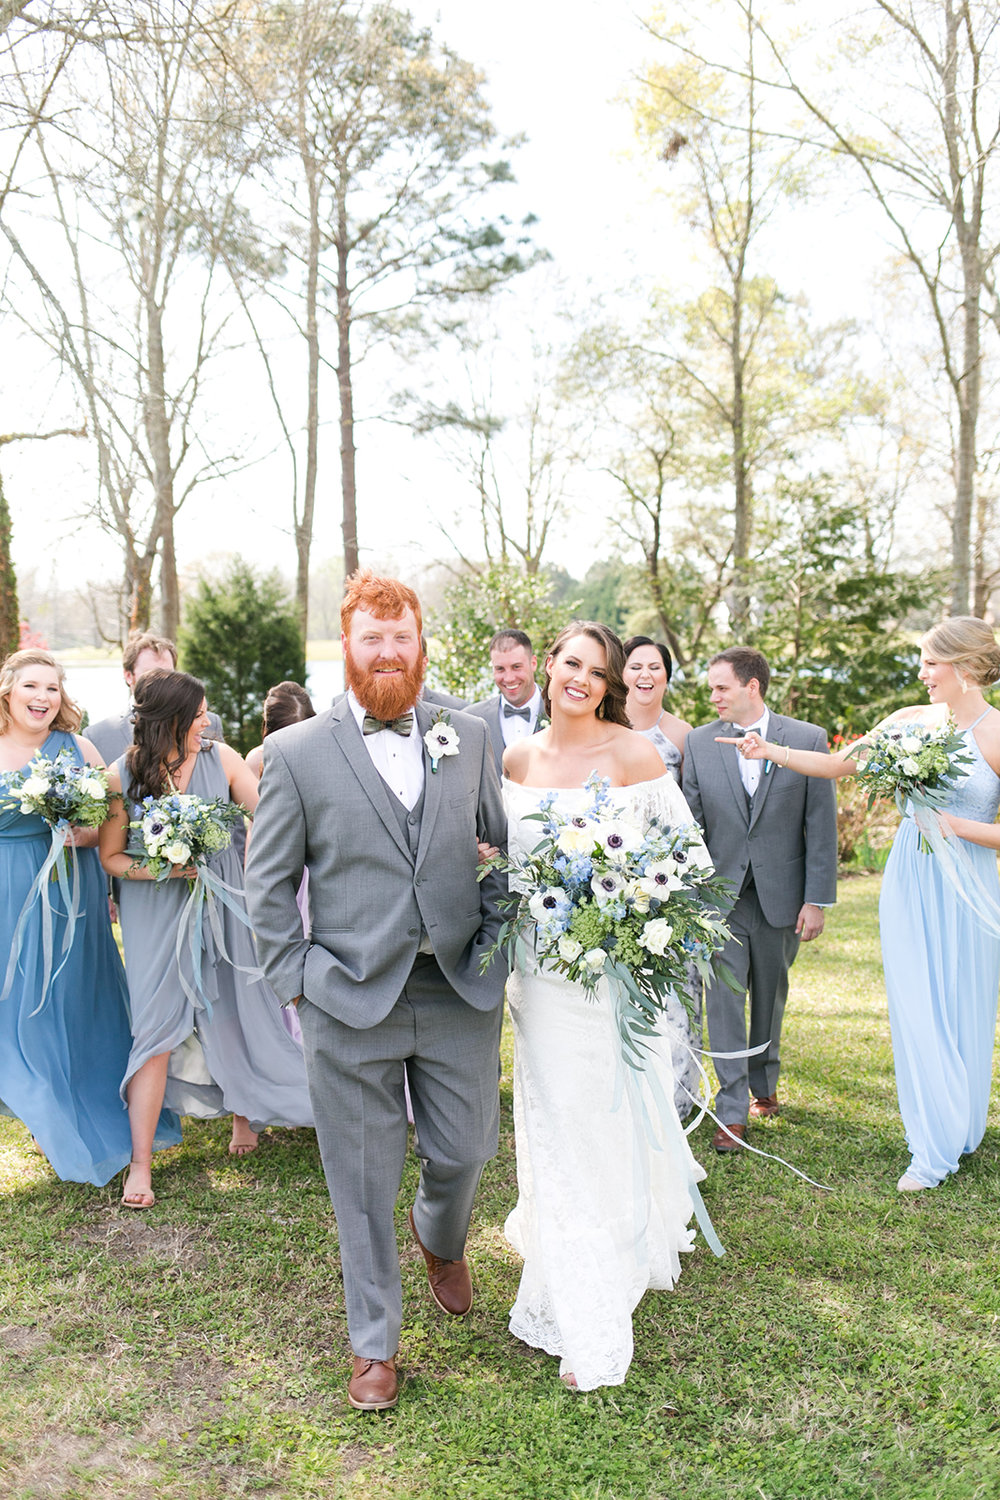 ivory-and-beau-bridal-boutique-i-and-b-bride-hillary-sidney-middlebrooks-photography-winnie-daughters-of-simone-the-venue-at-tryphena's-garden-16.jpg